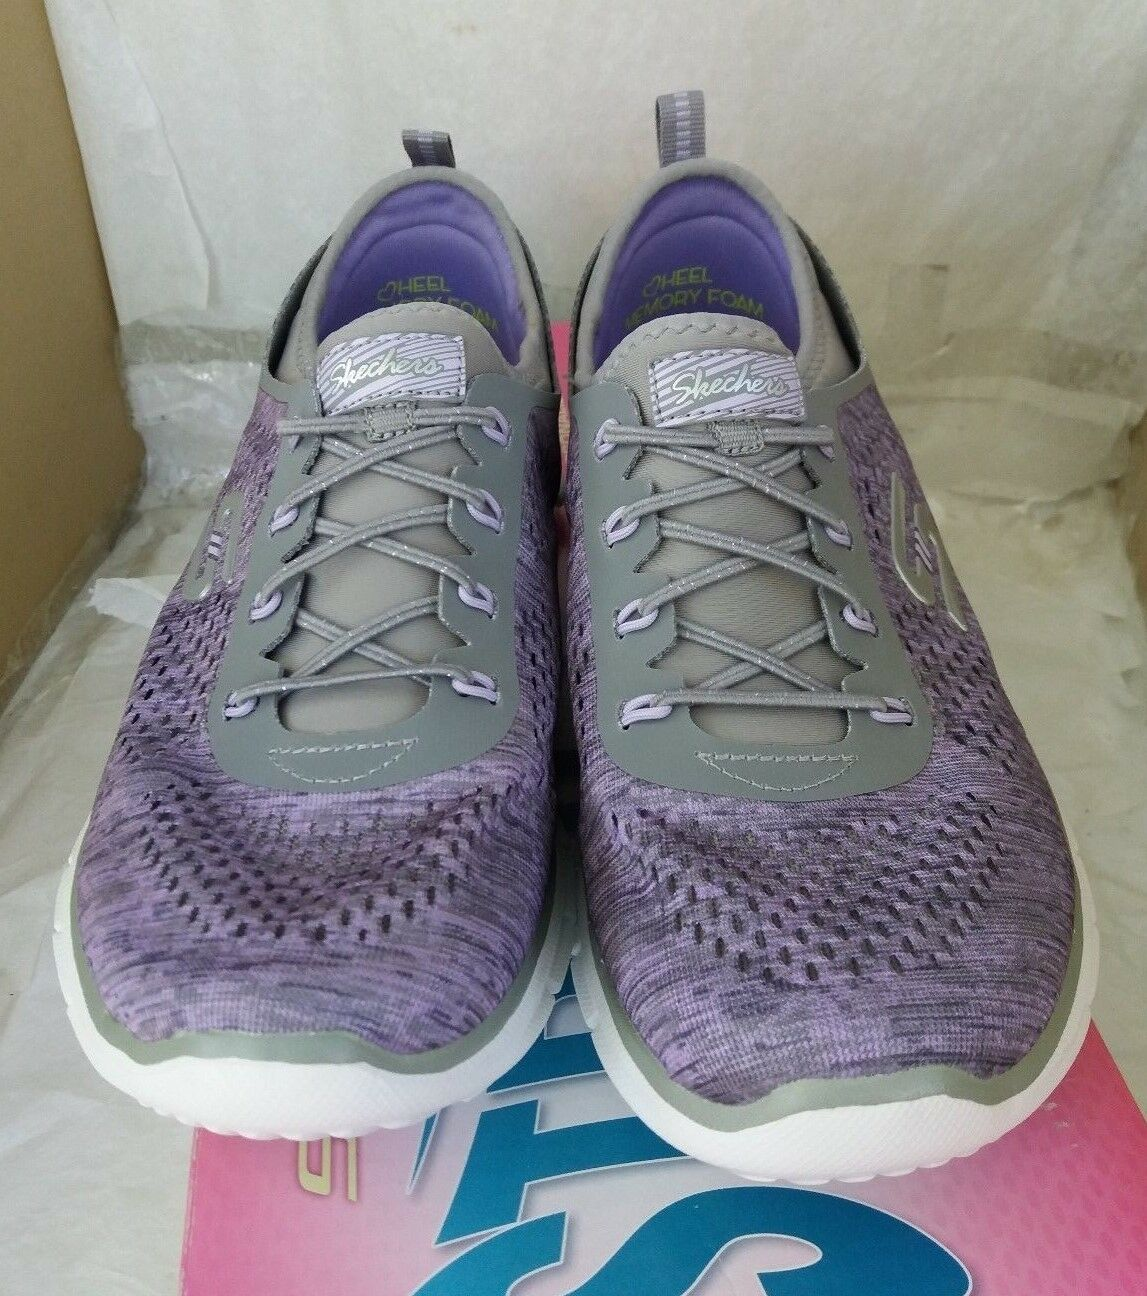 SKECHERS Stretch Fit: with Air Air with Cooled Memory Foam - Grau/Violet db737b